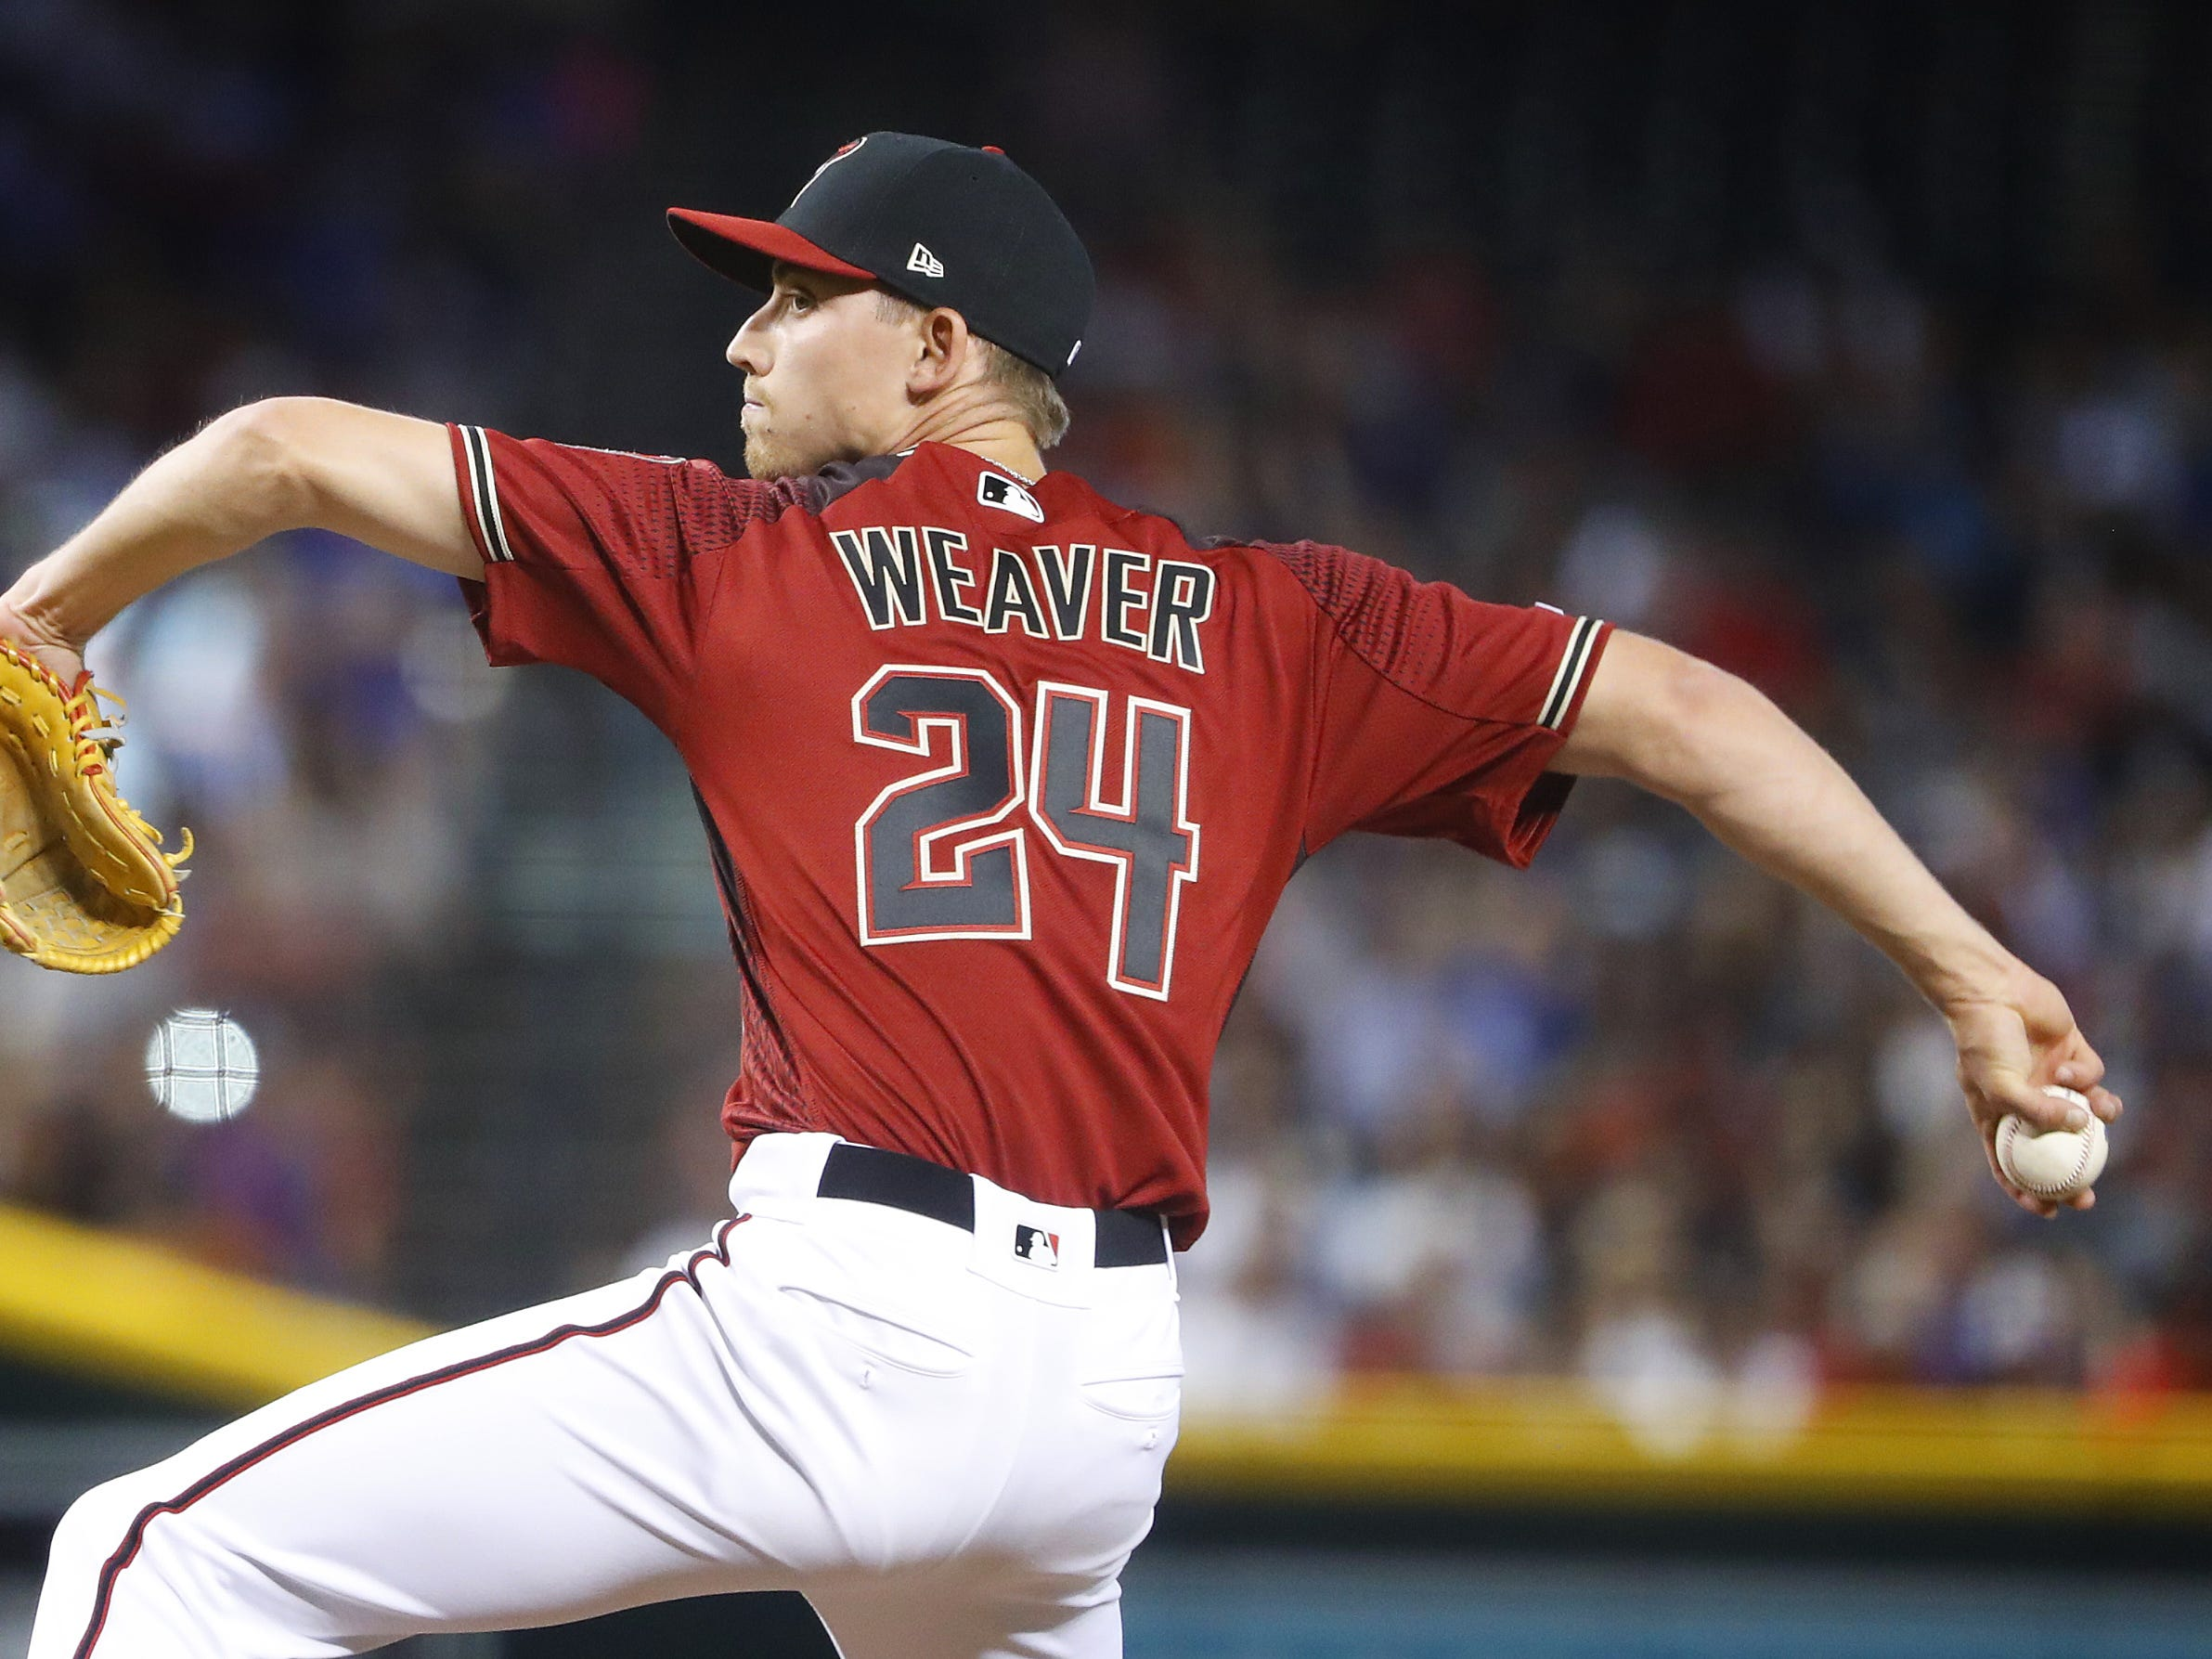 Diamondbacks Luke Weaver (24) pitches against the Cubs during the third inning at Chase Field in Phoenix, Ariz. on April 28, 2019.